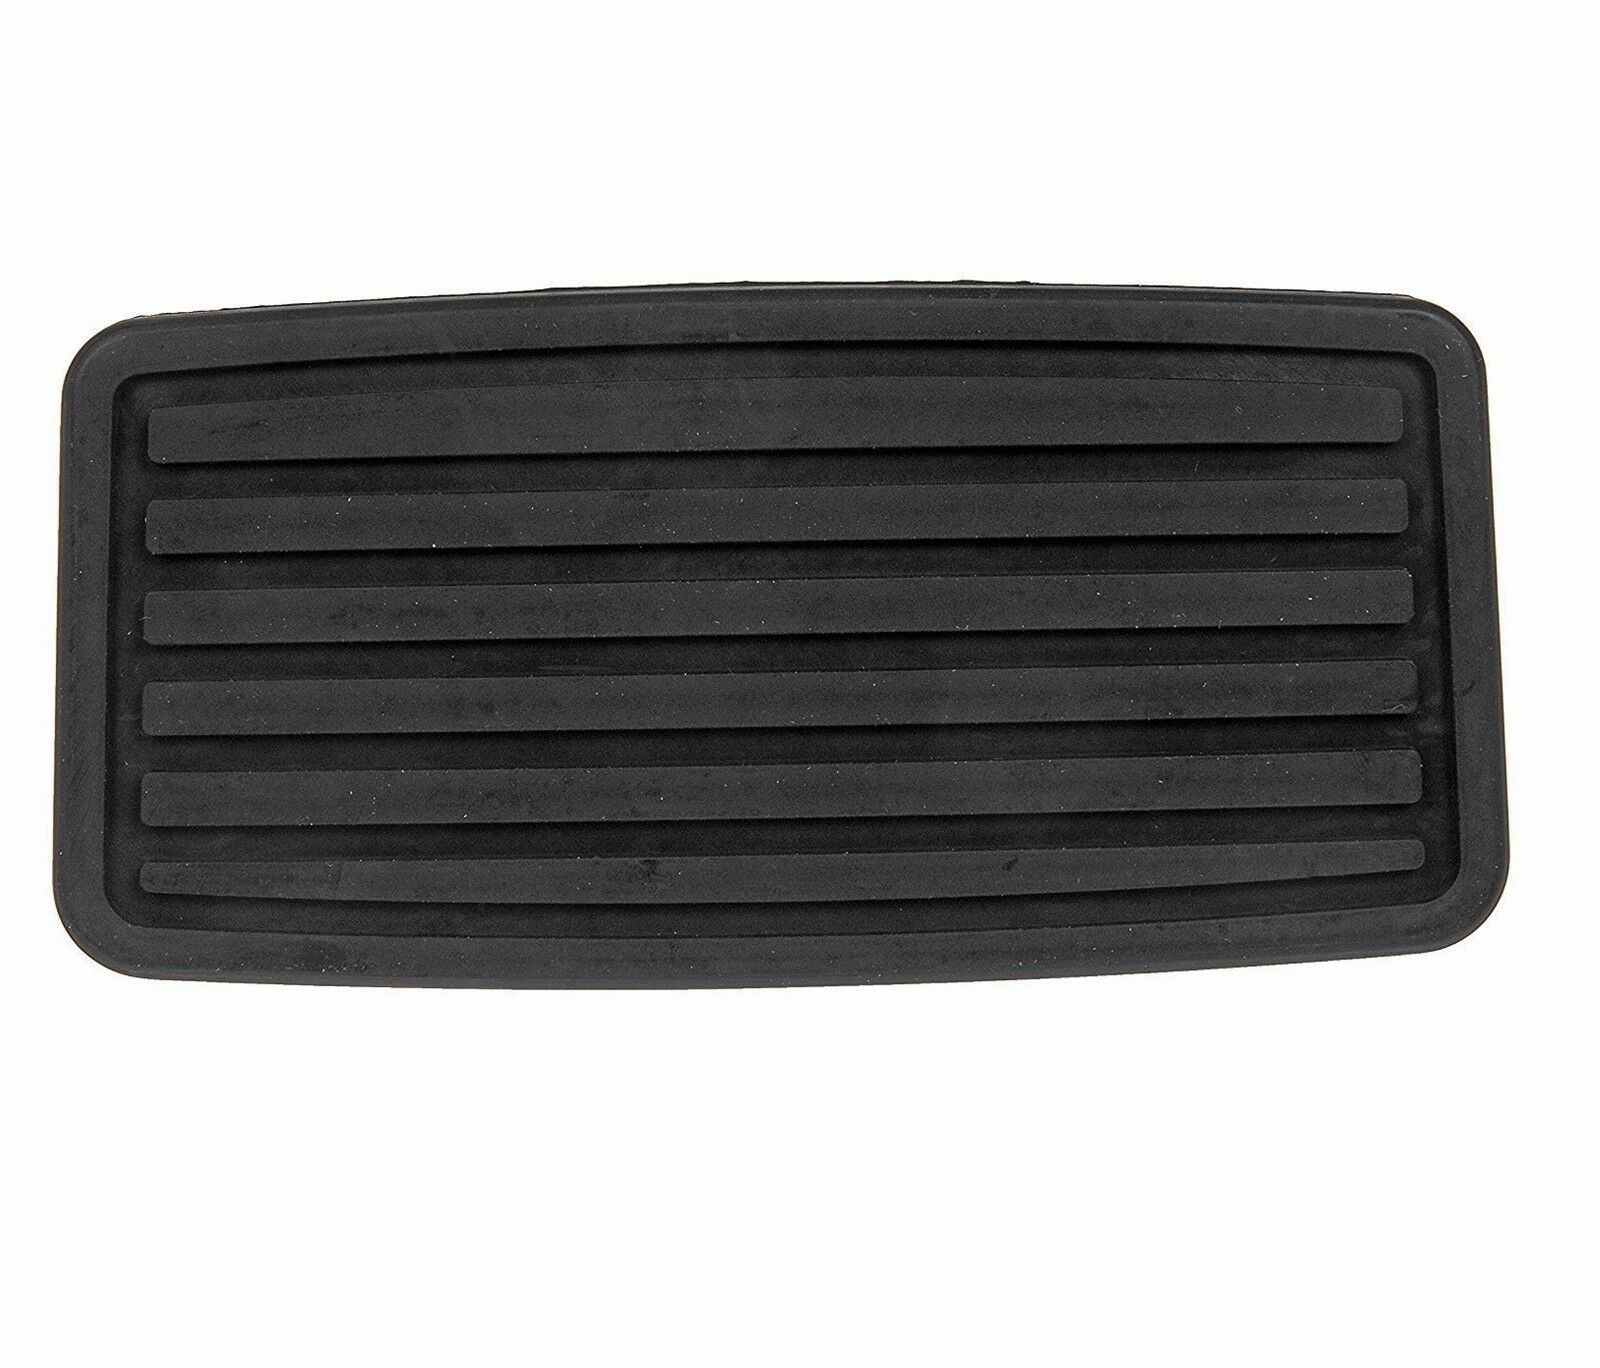 Direct Replacement Oem Brake Pedal Cover Tough Rubber Pad